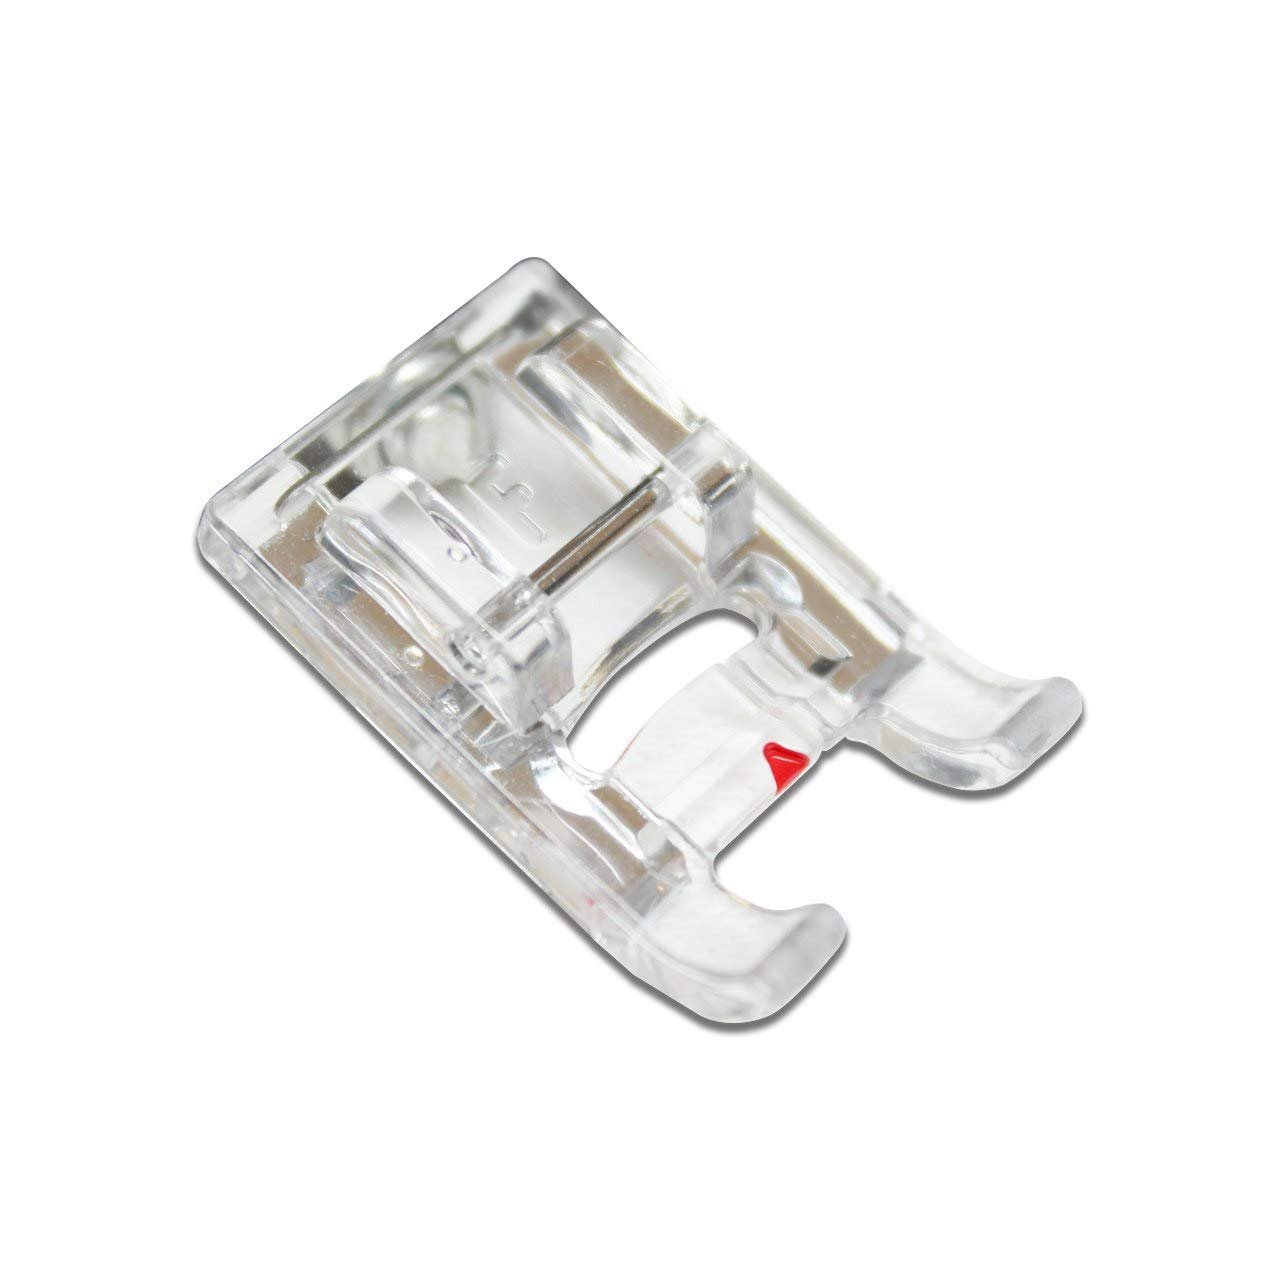 9mm Janome Satin Stitch Foot F